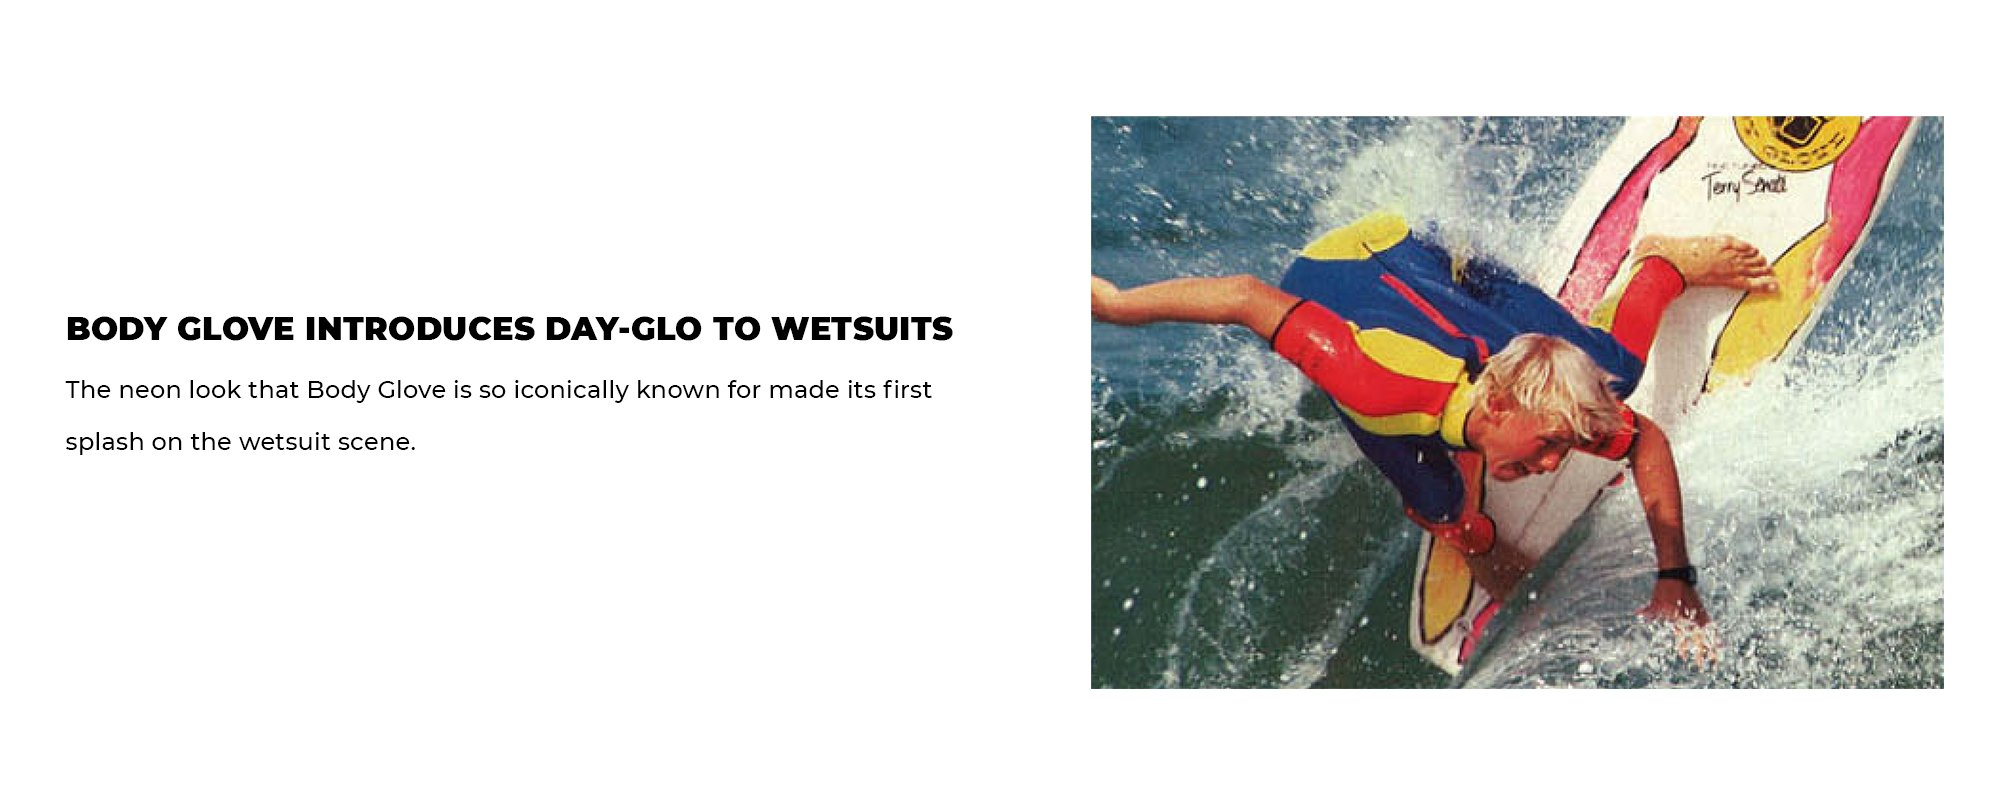 Body Glove Introduces Day-Glo to Wetsuits | The neon look that Body Glove is so iconically known for made its first splash on the wetsuit scene.